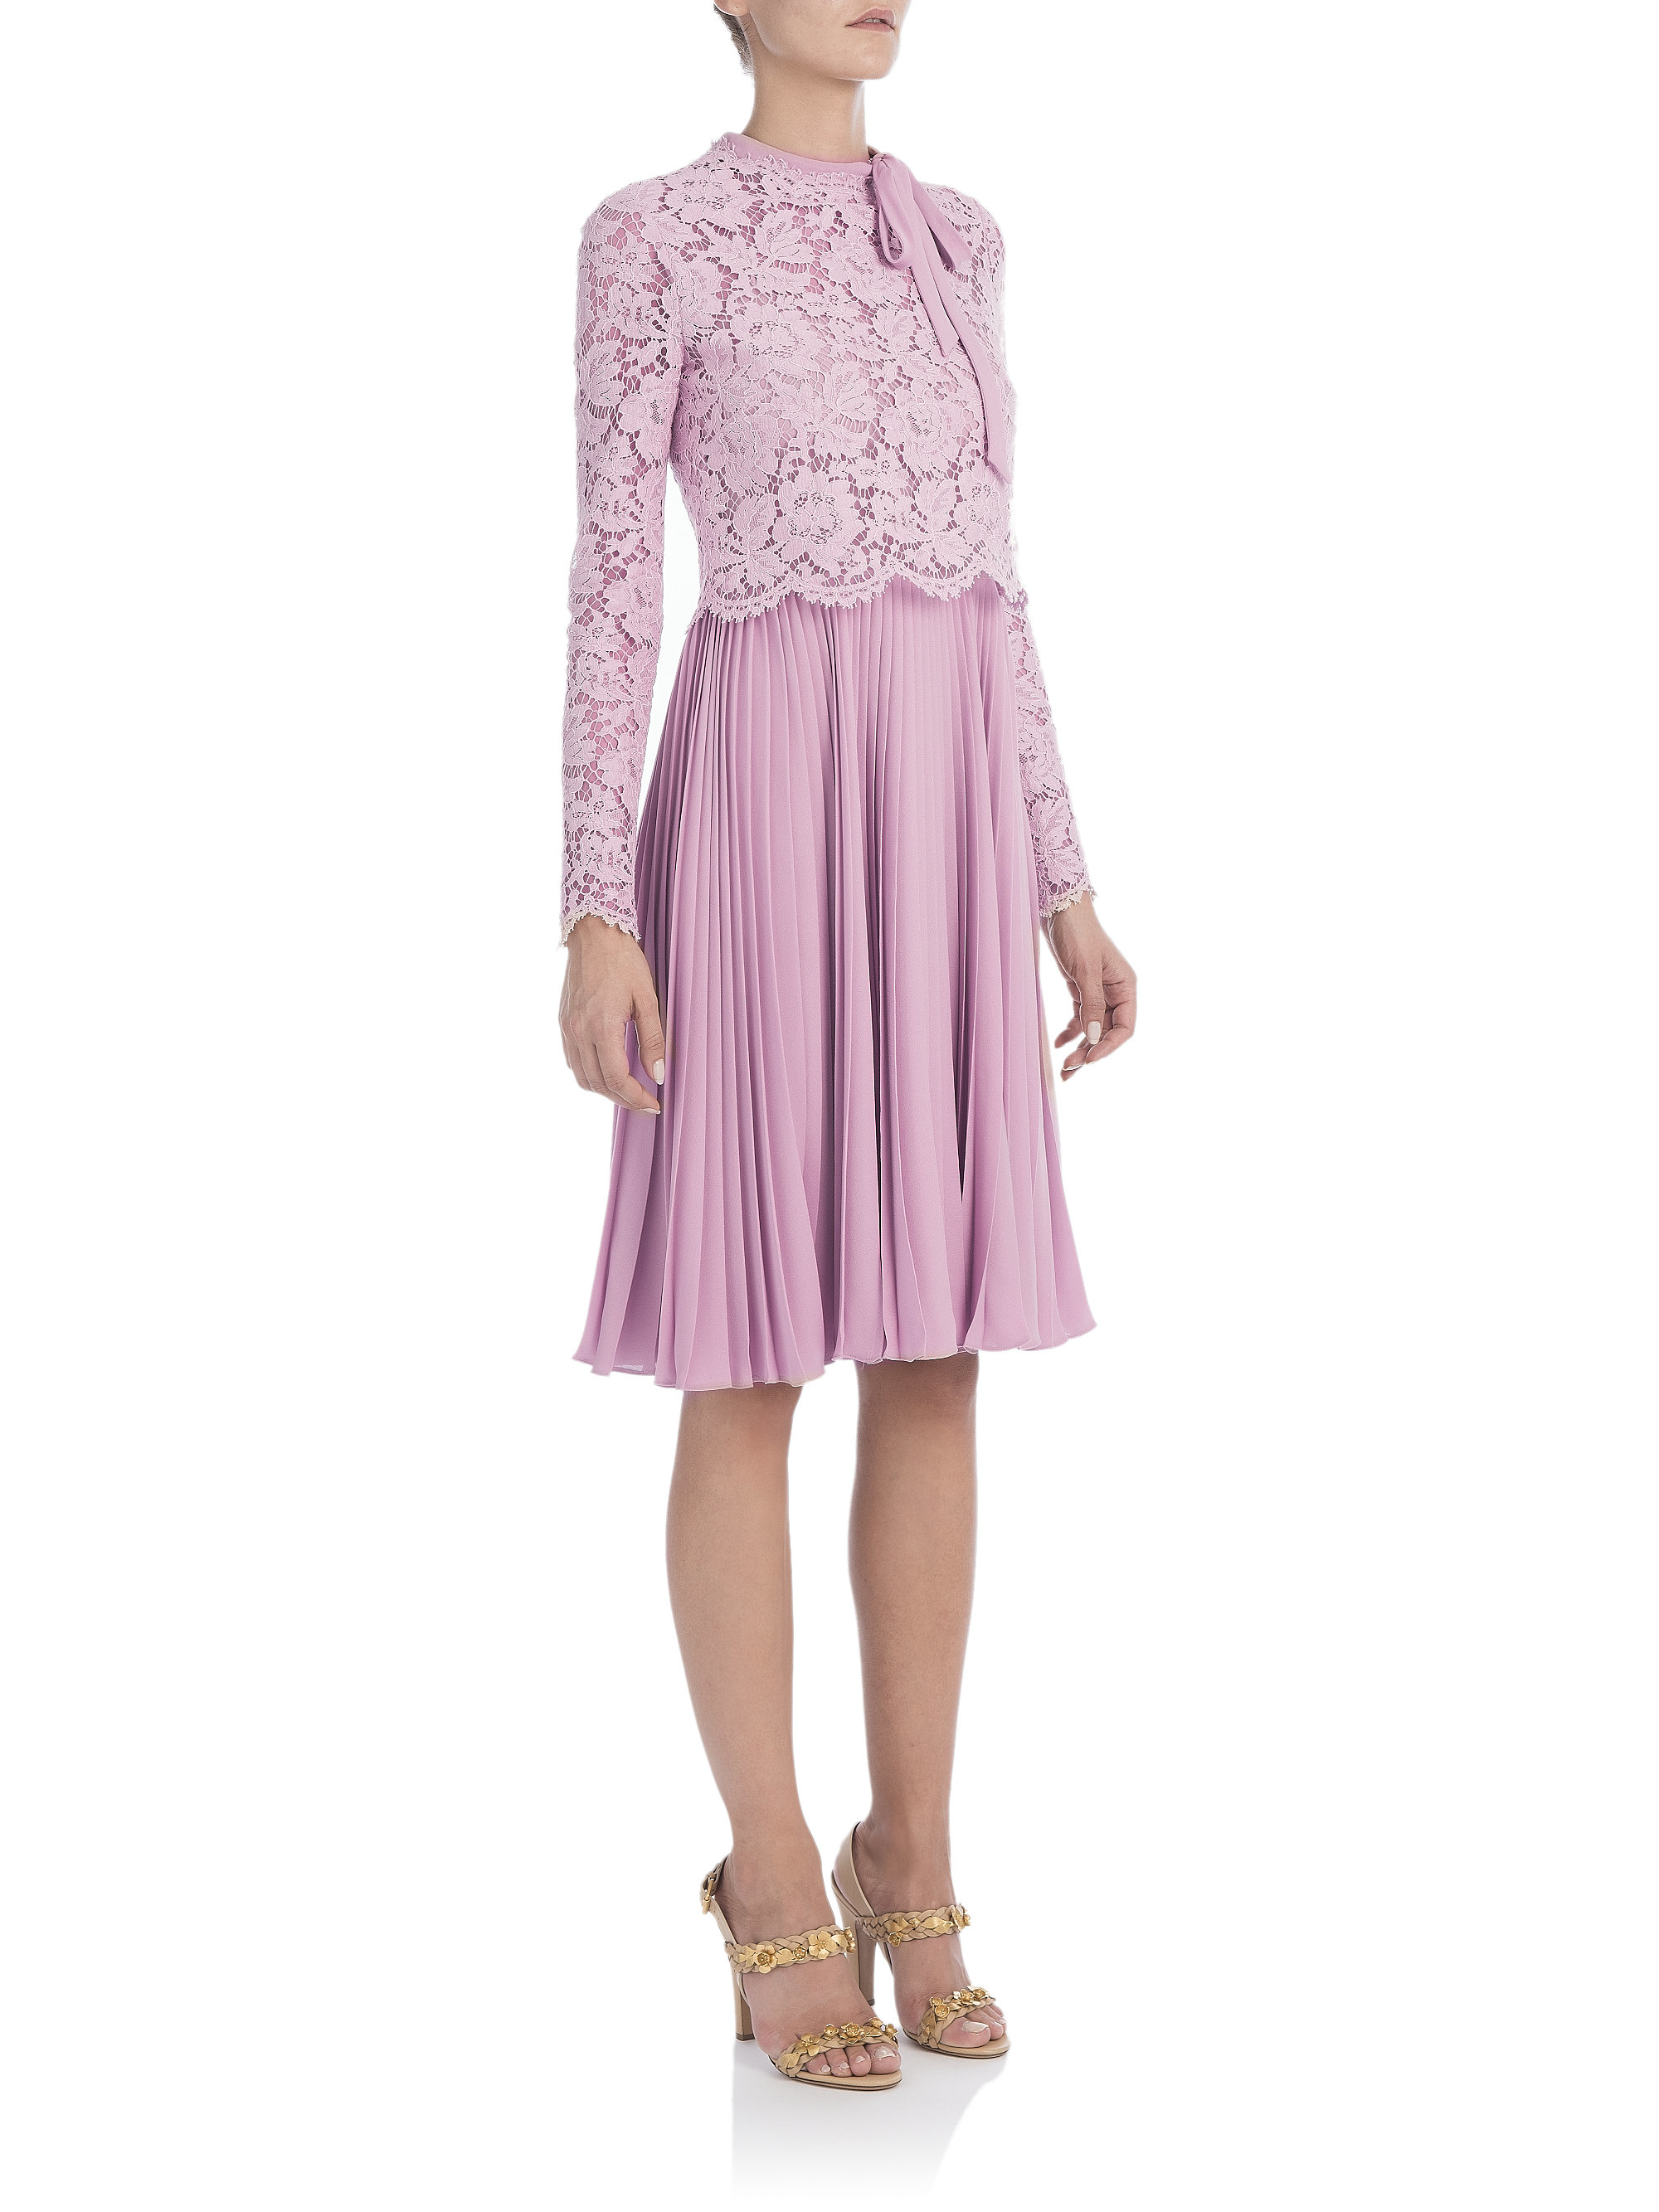 Shopping Online Cheap Price High Quality Valentino Woman Off-the-shoulder Ruffled Printed Silk-chiffon Gown Antique Rose Size 42 Valentino 100% Authentic Cheap Online View Sale Online Sale How Much 9jqALaH67O